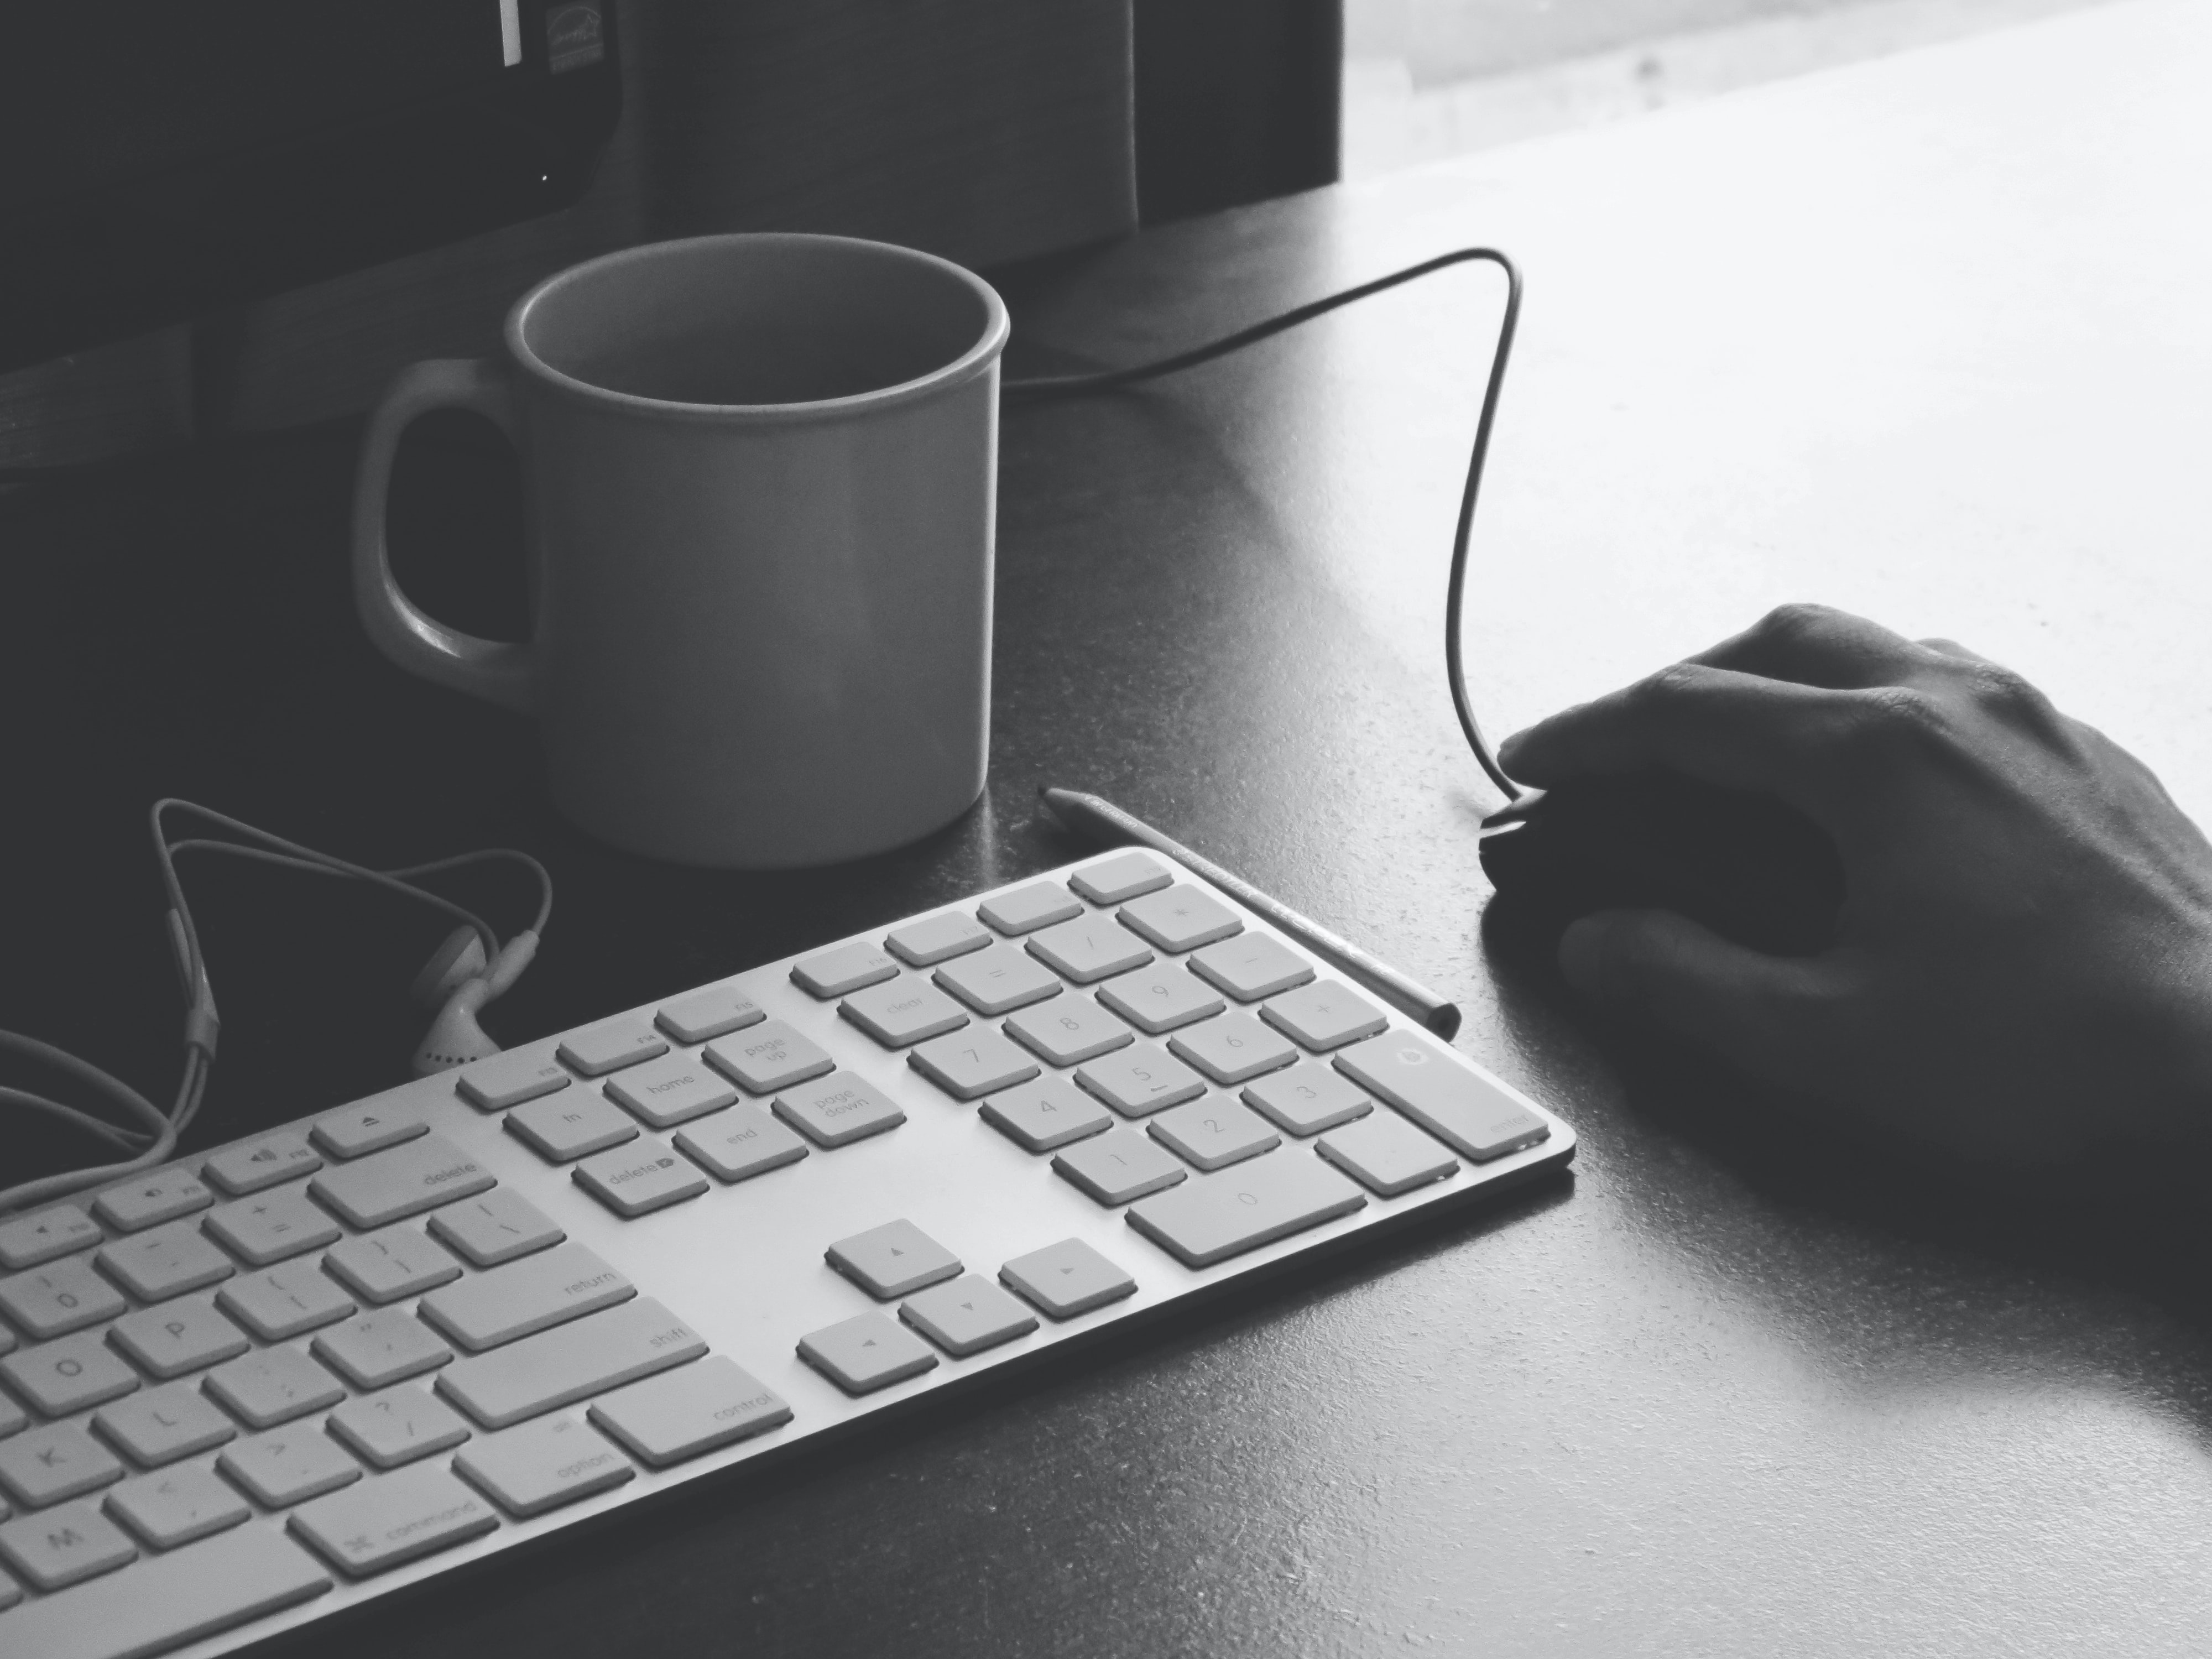 A black and white image of a keyboard, computer, teacup, and a hand holding a mouse in an office setting